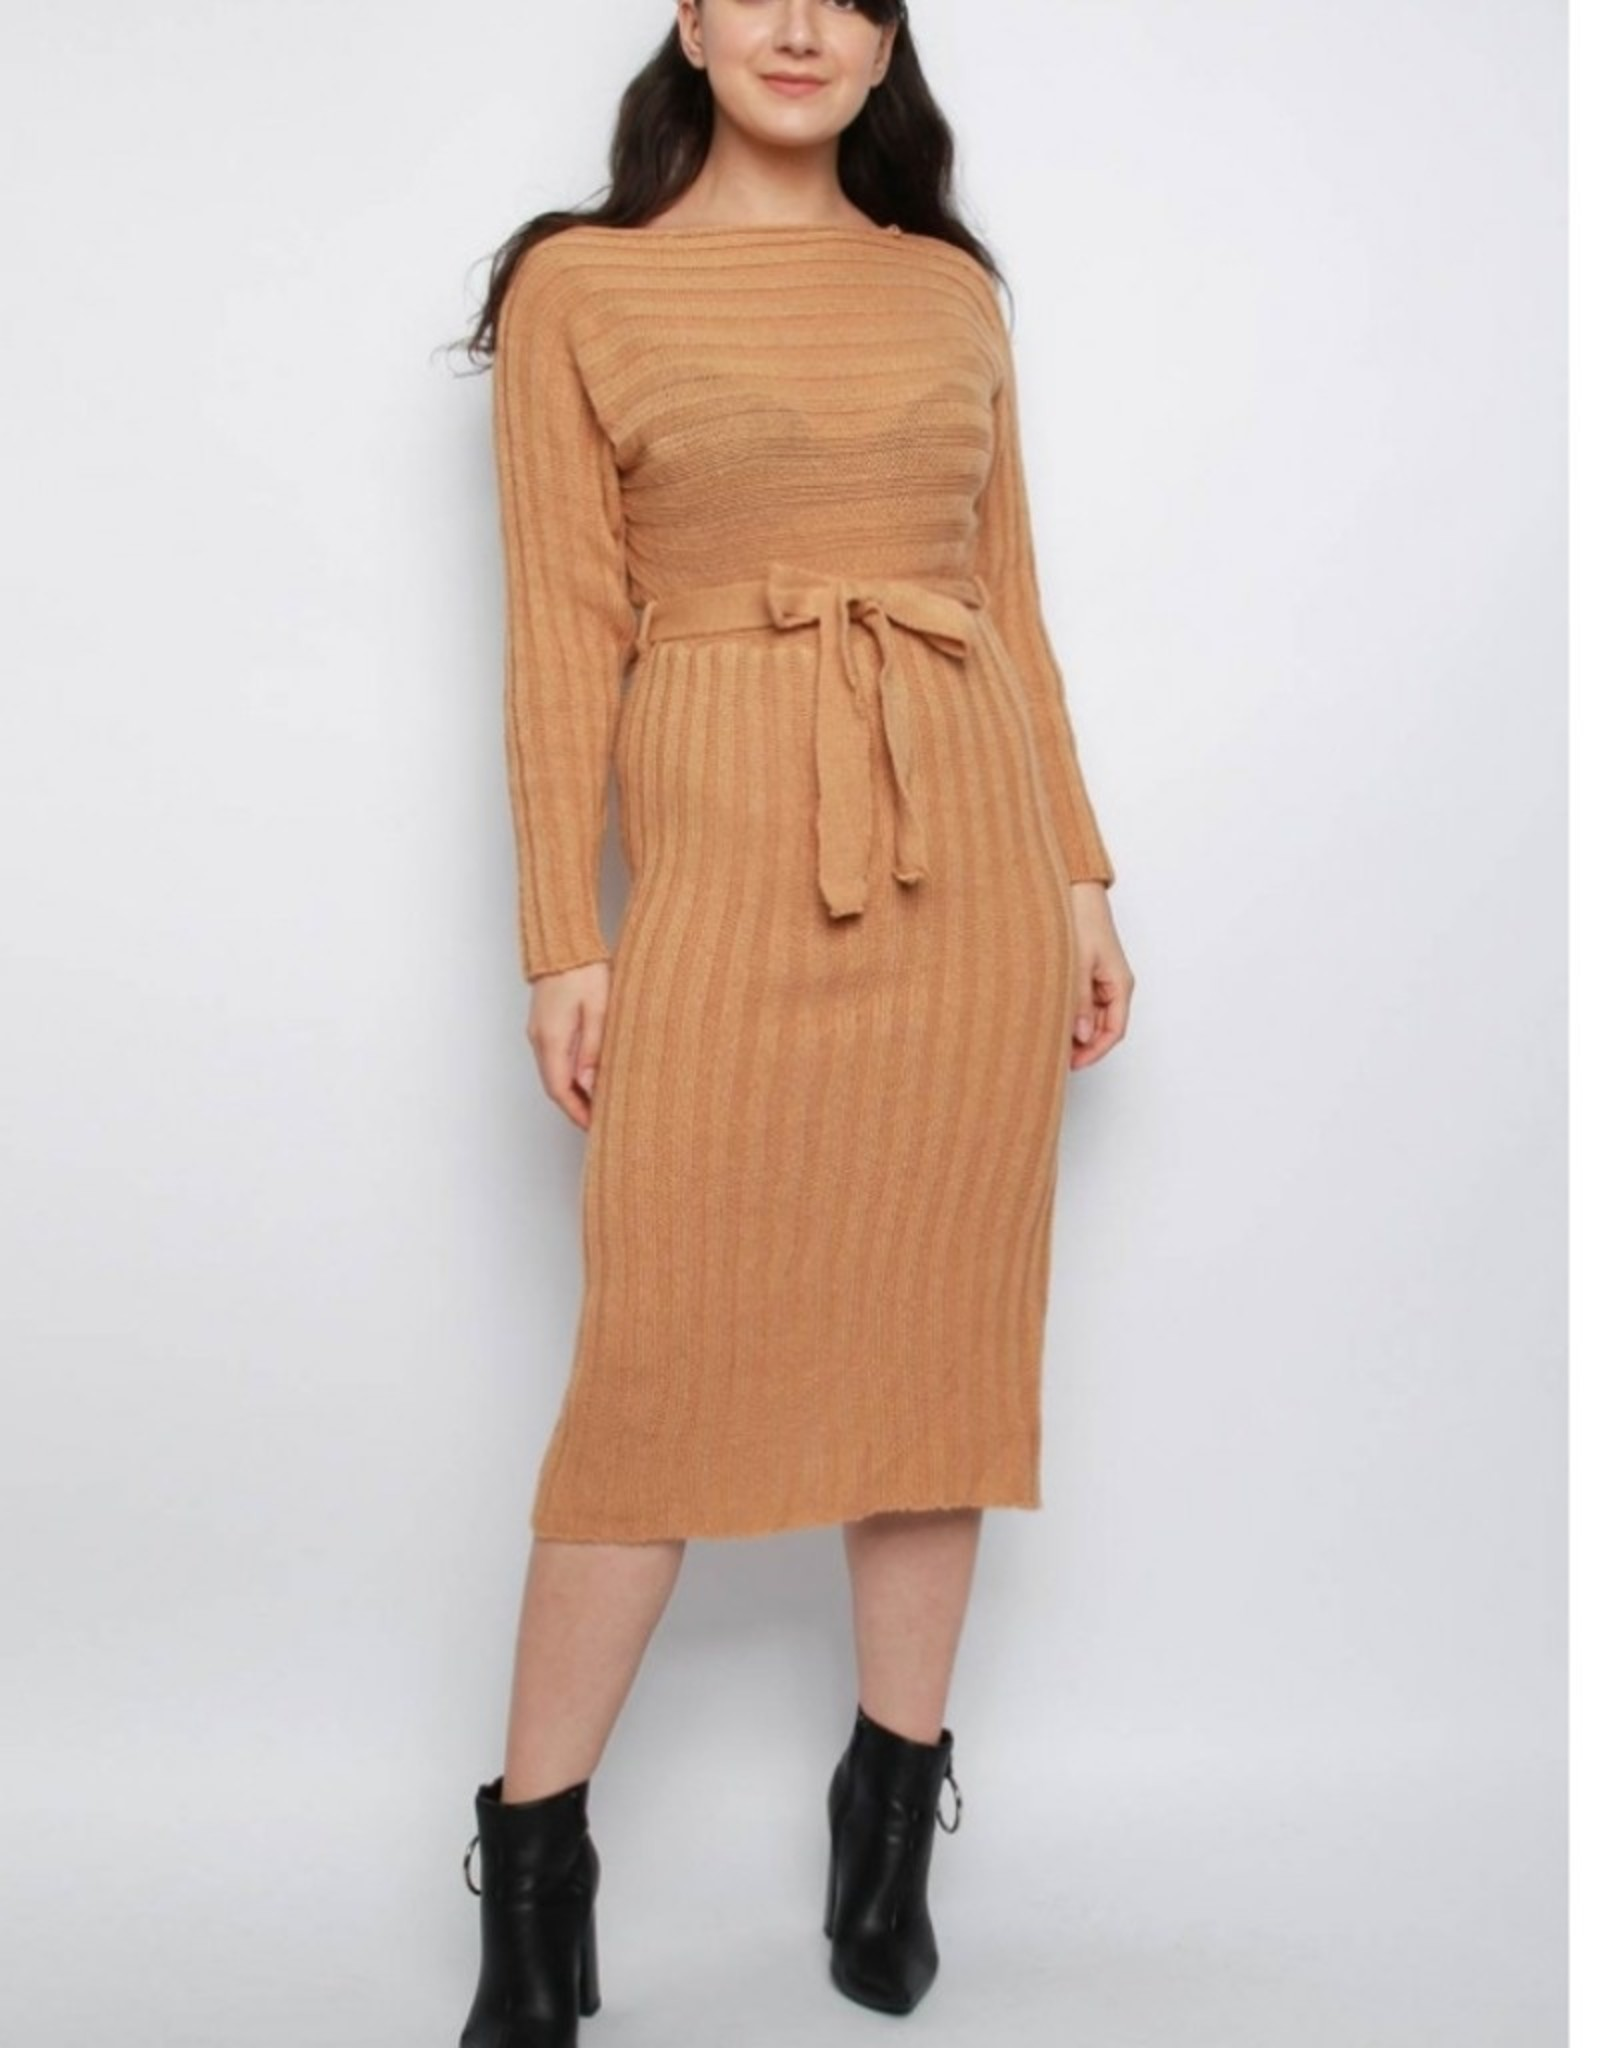 Missi Clothing belted midi sweater dress